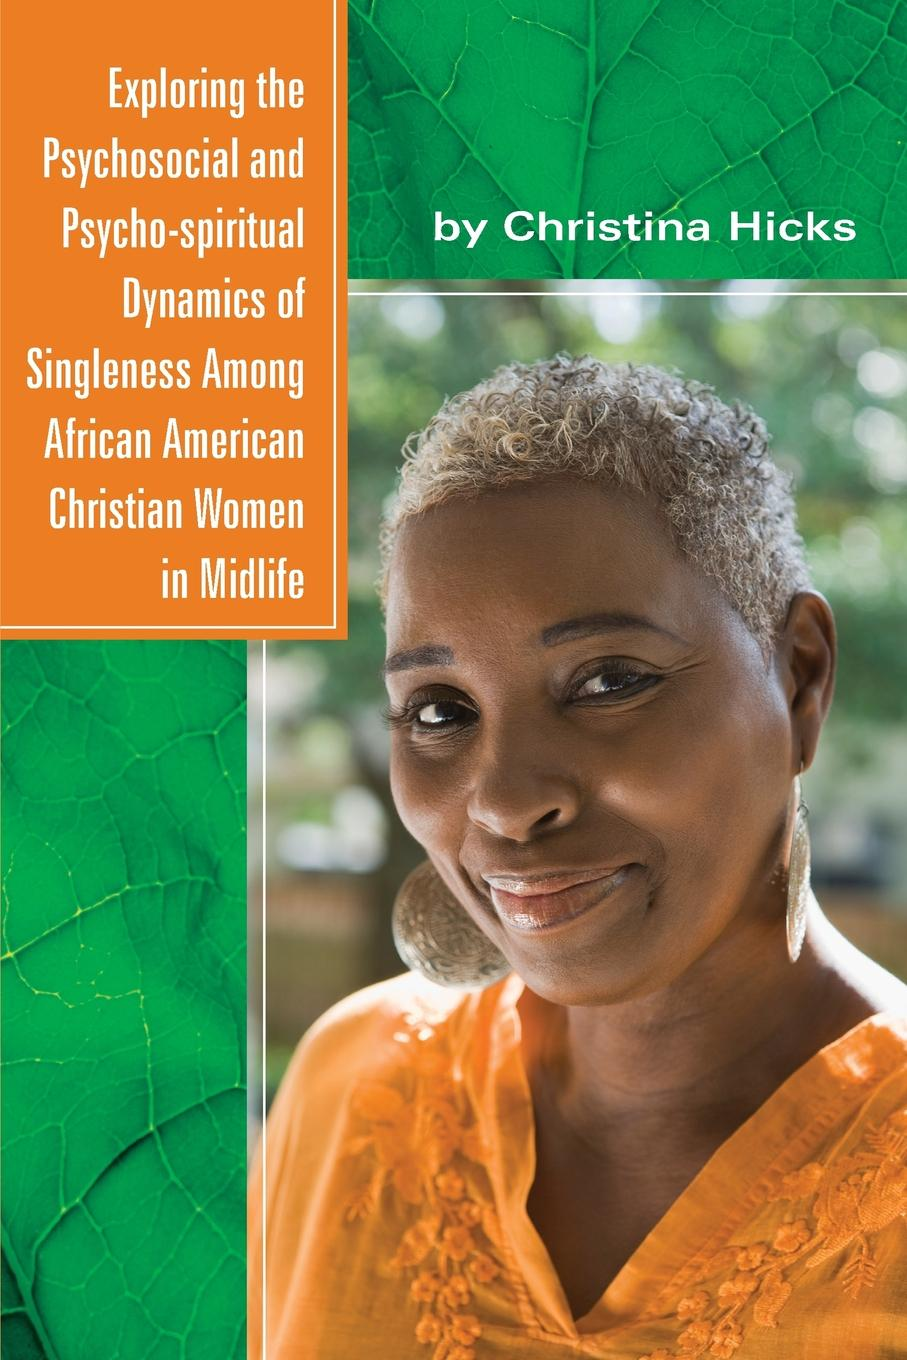 Christina Hicks Exploring the Psychosocial and Psycho-spiritual Dynamics of Singleness Among African American Christian Women in Midlife 2018 italian shoes with matching bags set italy african women s party shoes and bag sets gold color women sandals and handbag